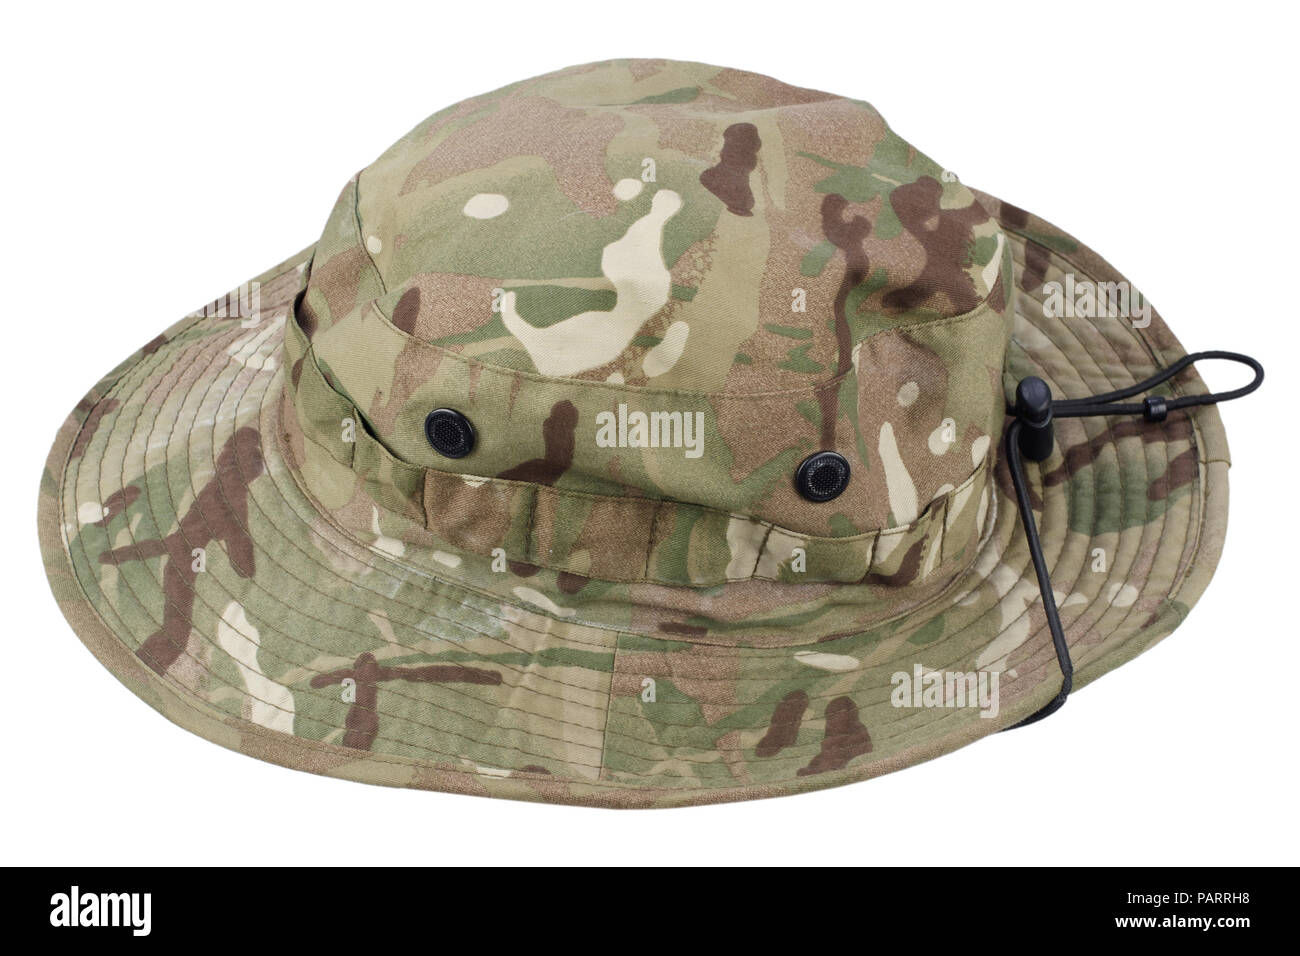 boonie hat isolated Stock Photo  213194388 - Alamy 06ee5efbebd